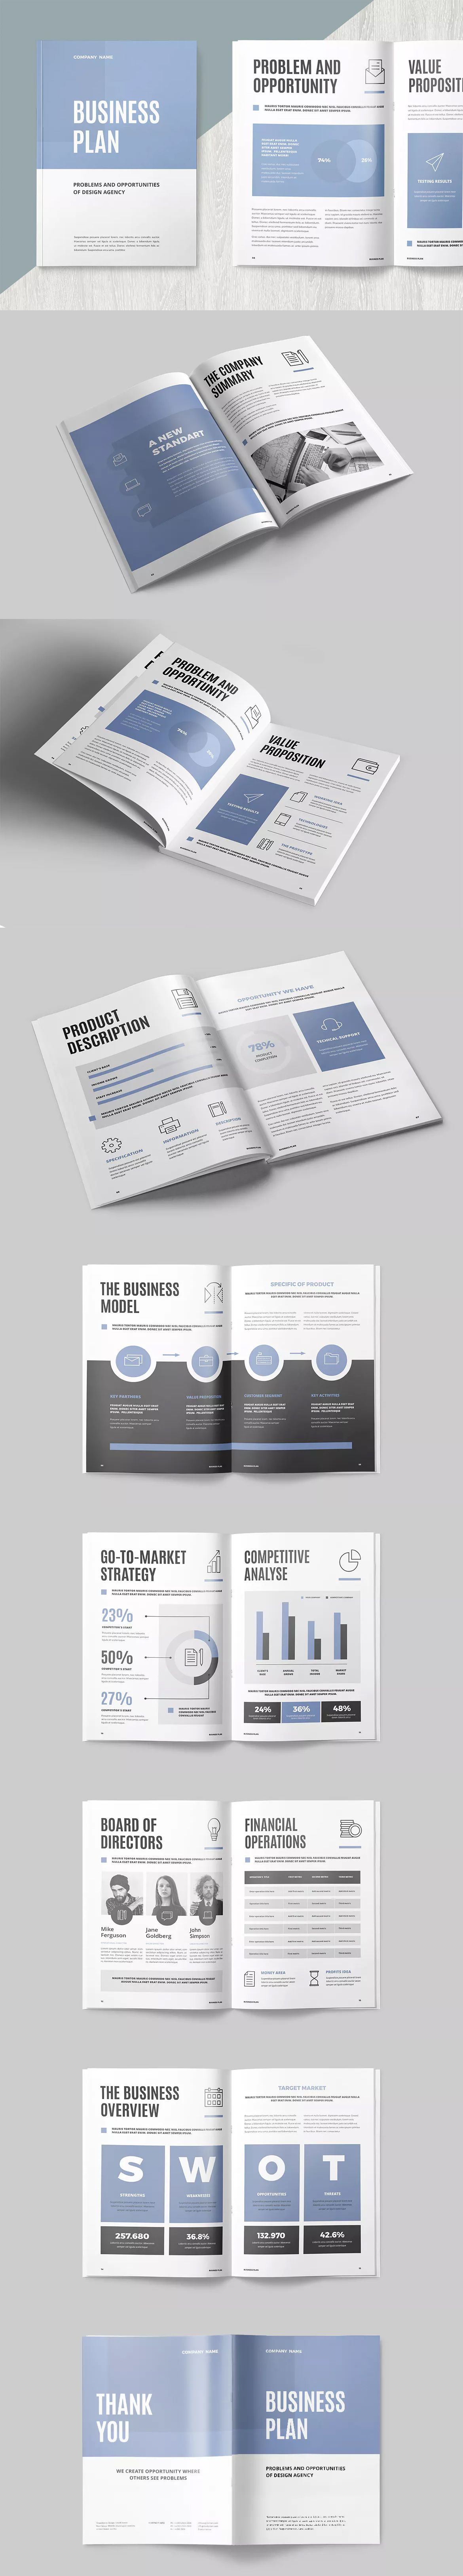 Business Plan Template InDesign INDD A Editorial - Business plan template indesign